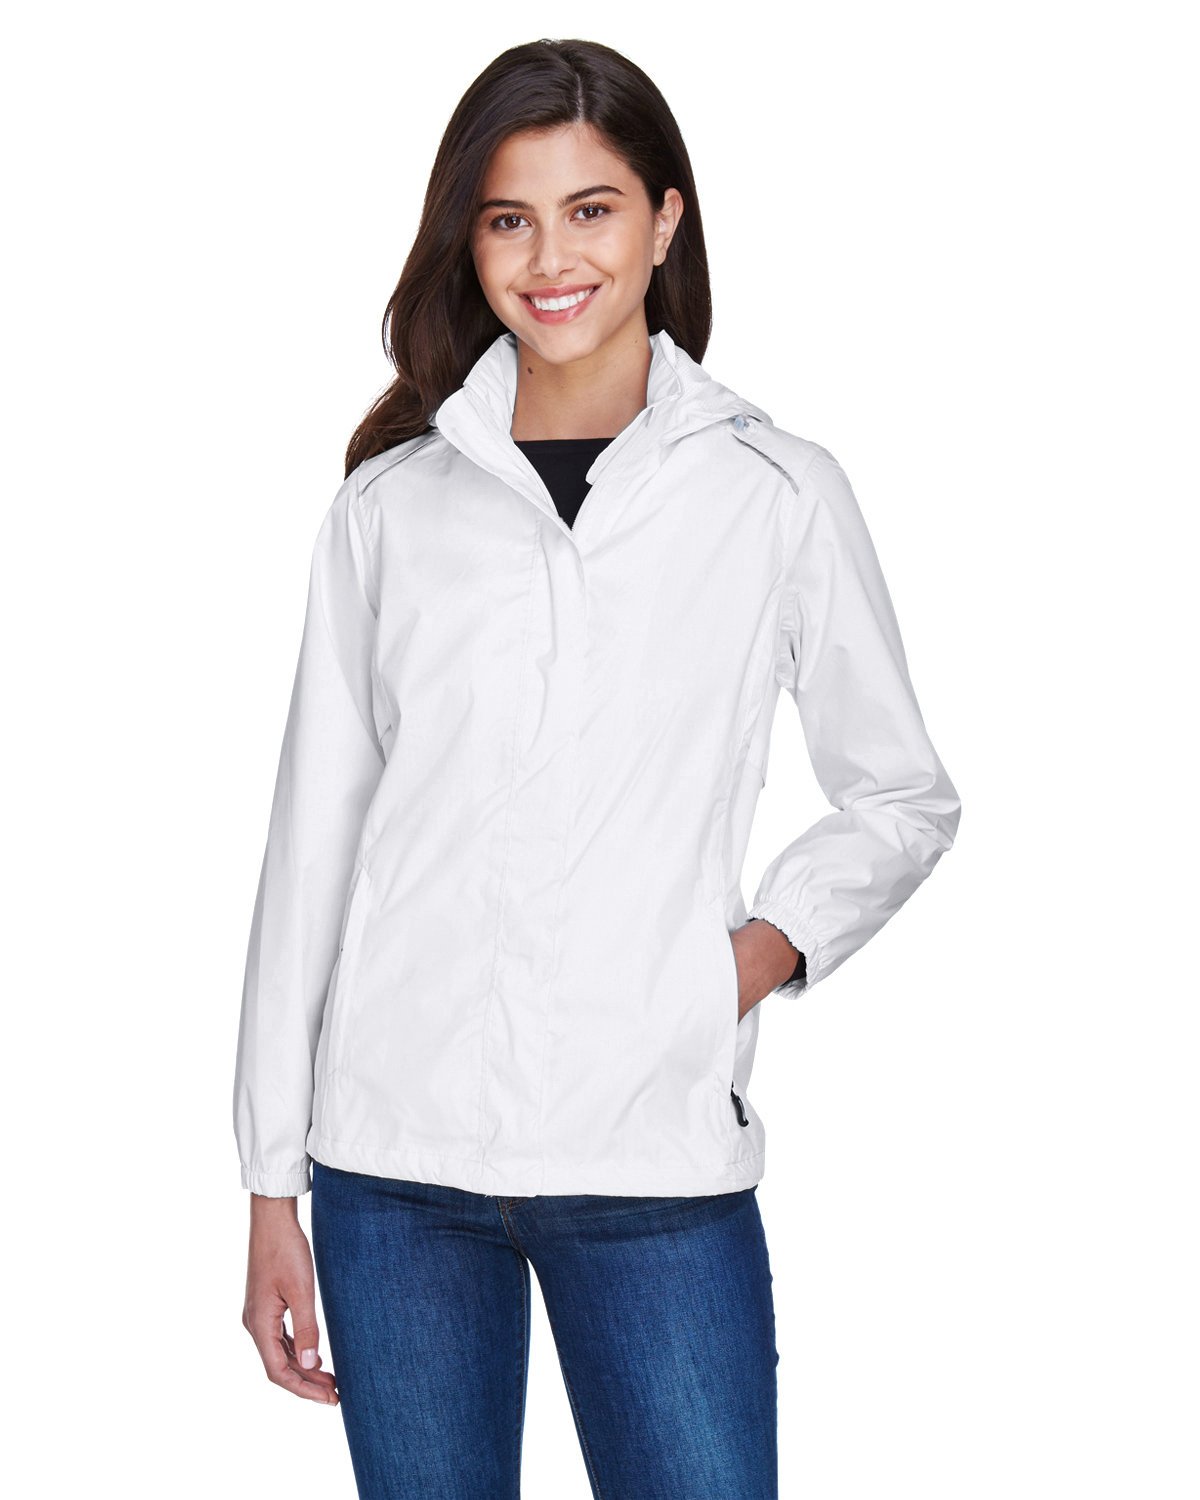 Core 365 Ladies' Climate Seam-Sealed Lightweight Variegated Ripstop Jacket WHITE